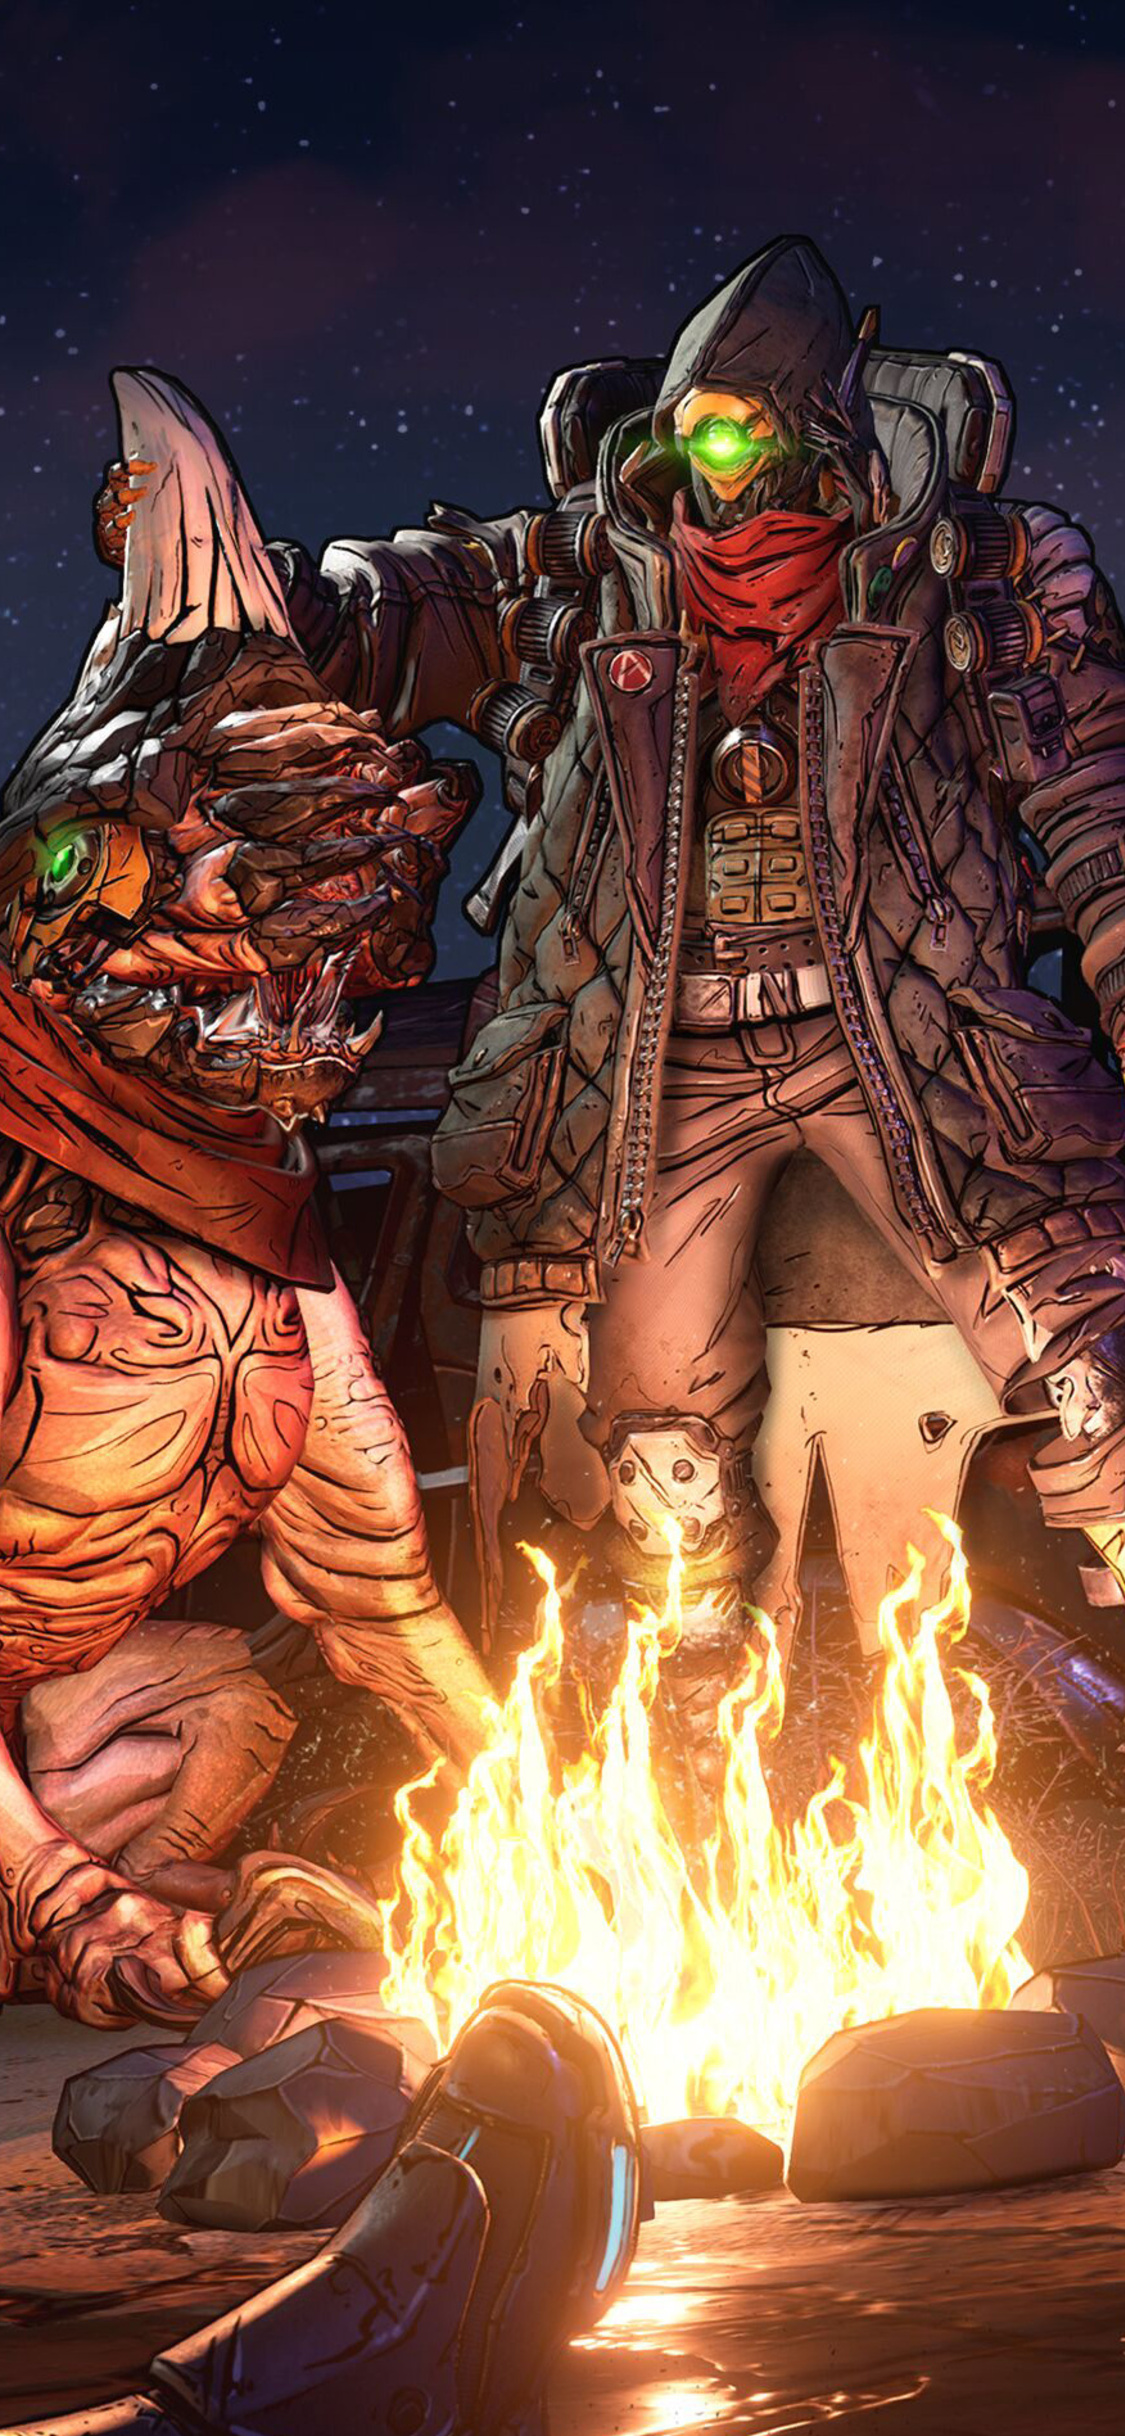 1125x2436 Borderlands 3 2019 4k Iphone Xs Iphone 10 Iphone X